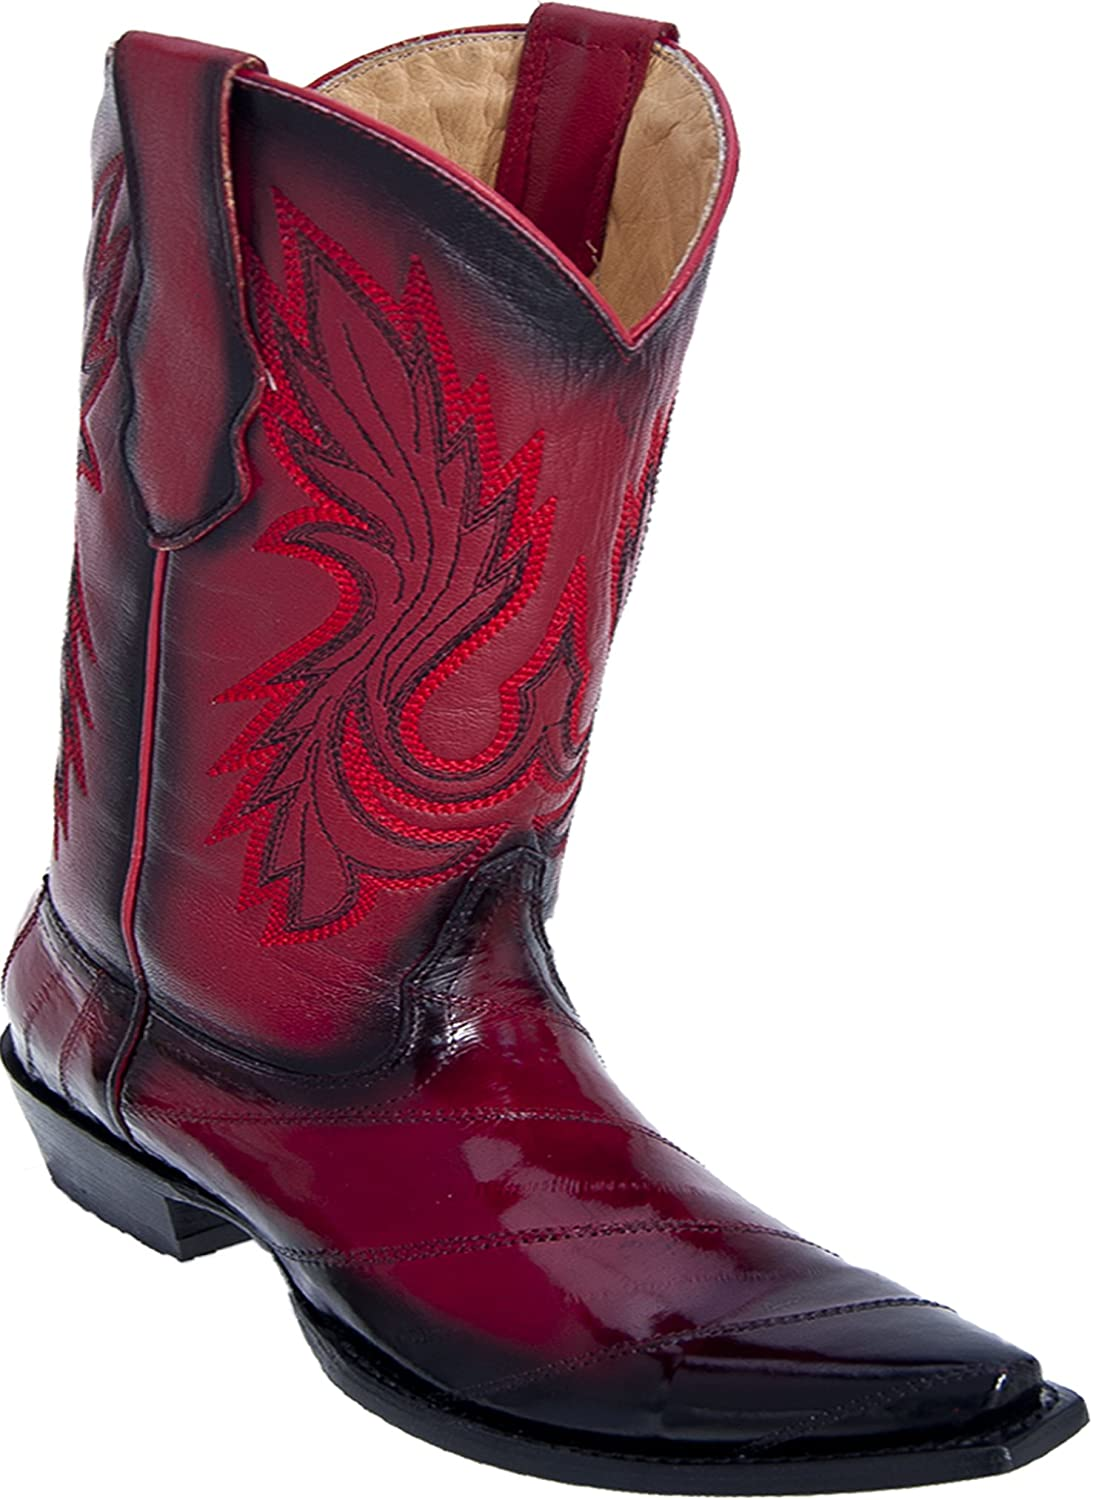 Los Altos Ladies Snip Toe Faded Red Genuine Leather EEL Skin Western Boots